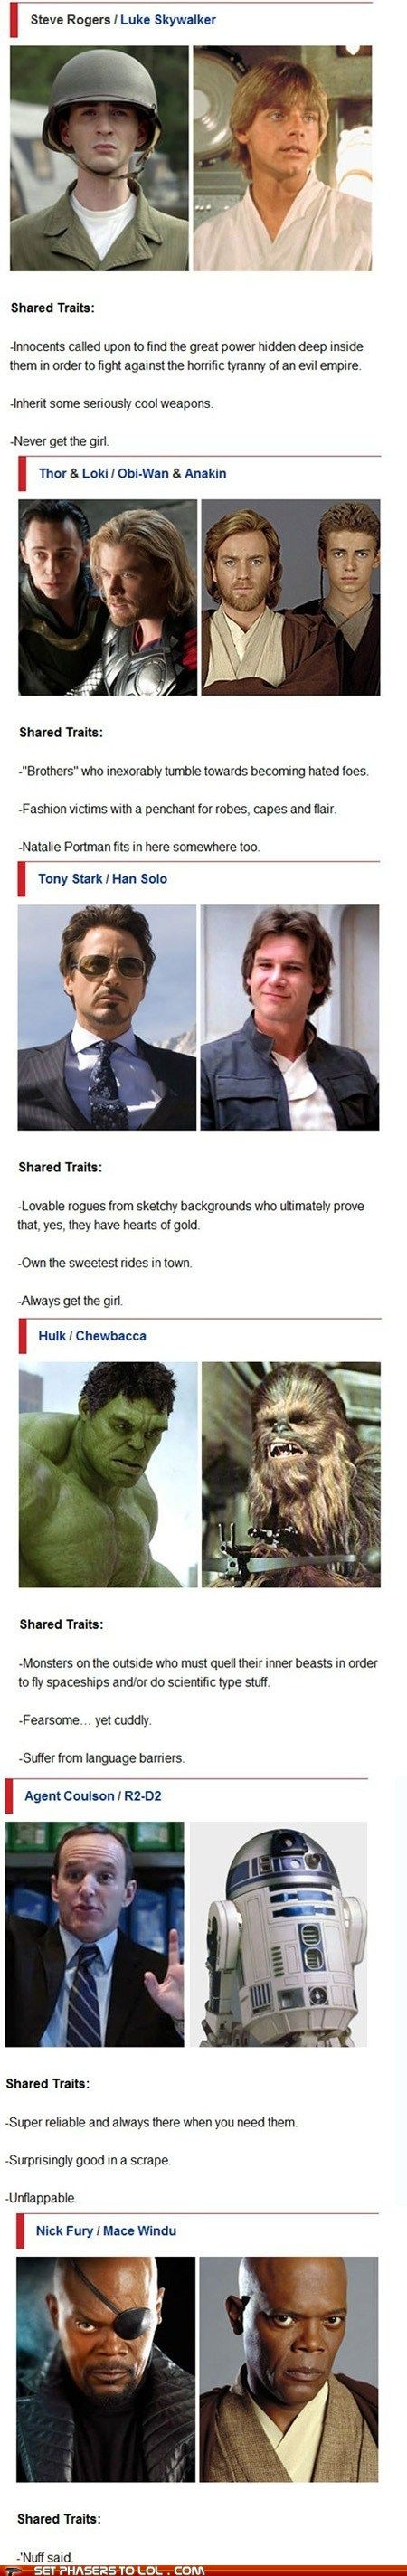 Um, I'm sorry, but why aren't Black Widow/Princess Leia on here as badass bitches who Get. Shit. Done? And how come there are no comparisons between Hawkeye and Lando Calrissian as good guys who are swayed by darkness yet ultimately come around and help save the day? Come on now people.